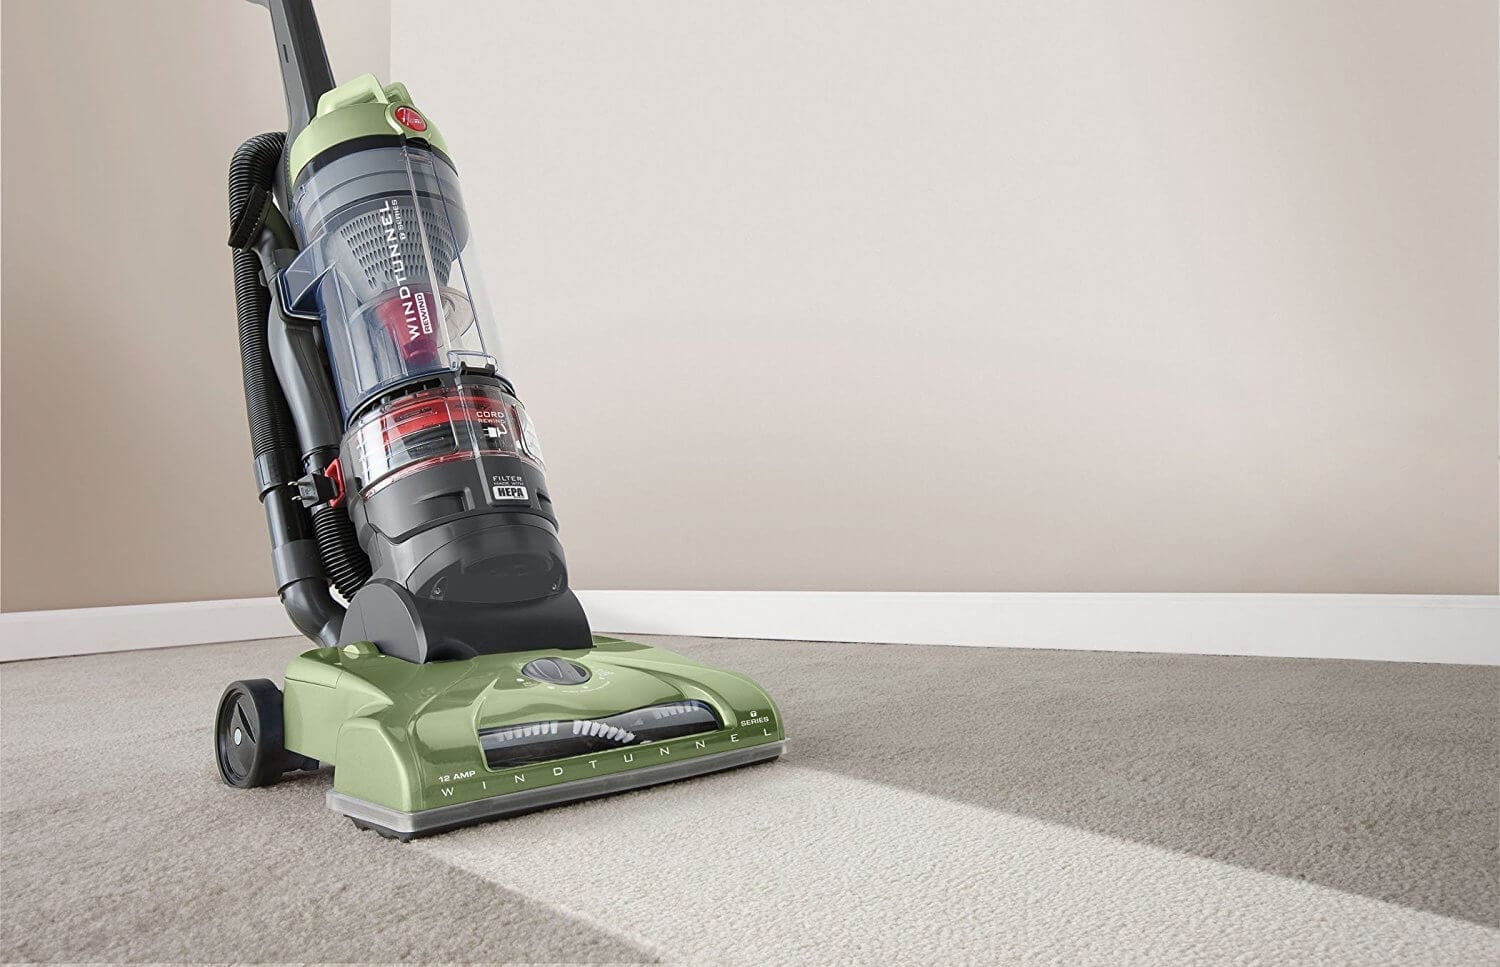 the hoover windtunnel tseries belongs to series of corded upright bagless vacuum cleaners that come at a very reasonable price under 150